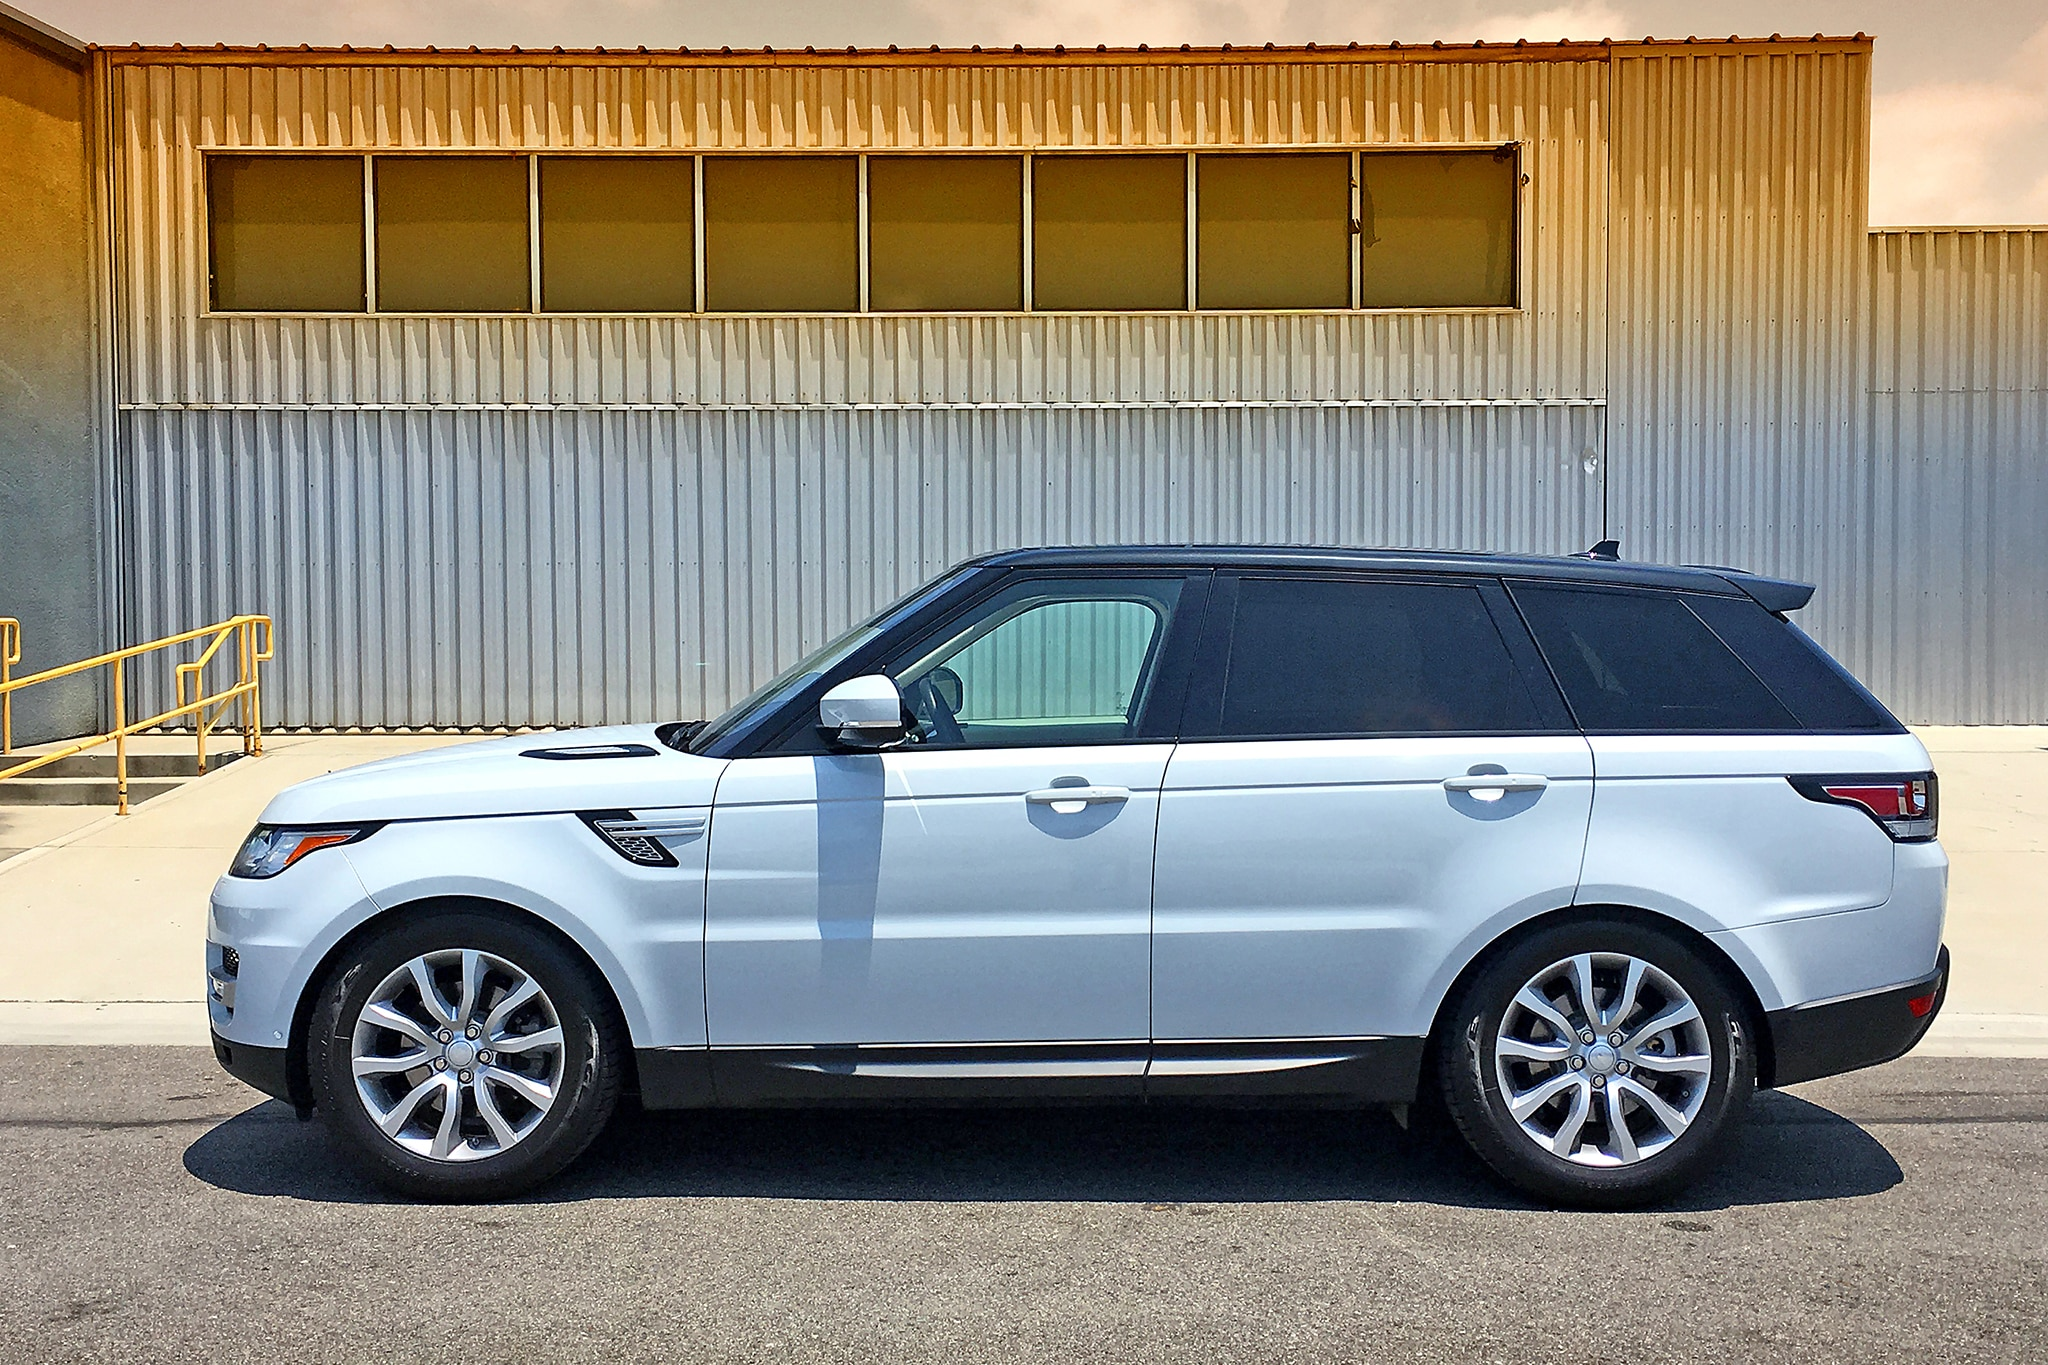 One Week With: 2016 Range Rover Sport HSE Td6